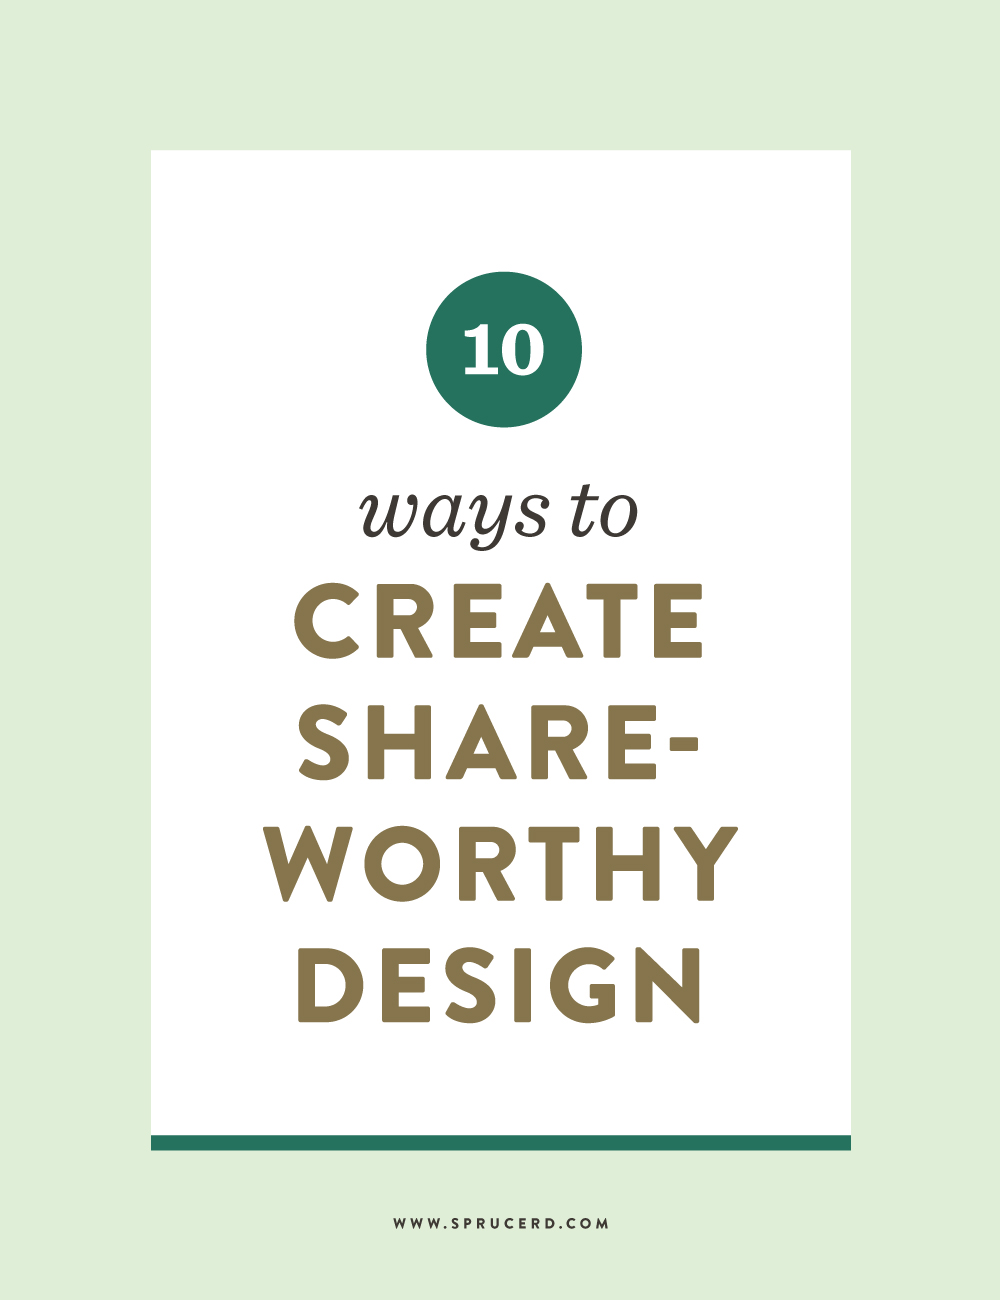 10-ways-create-shareworthy-design.jpg